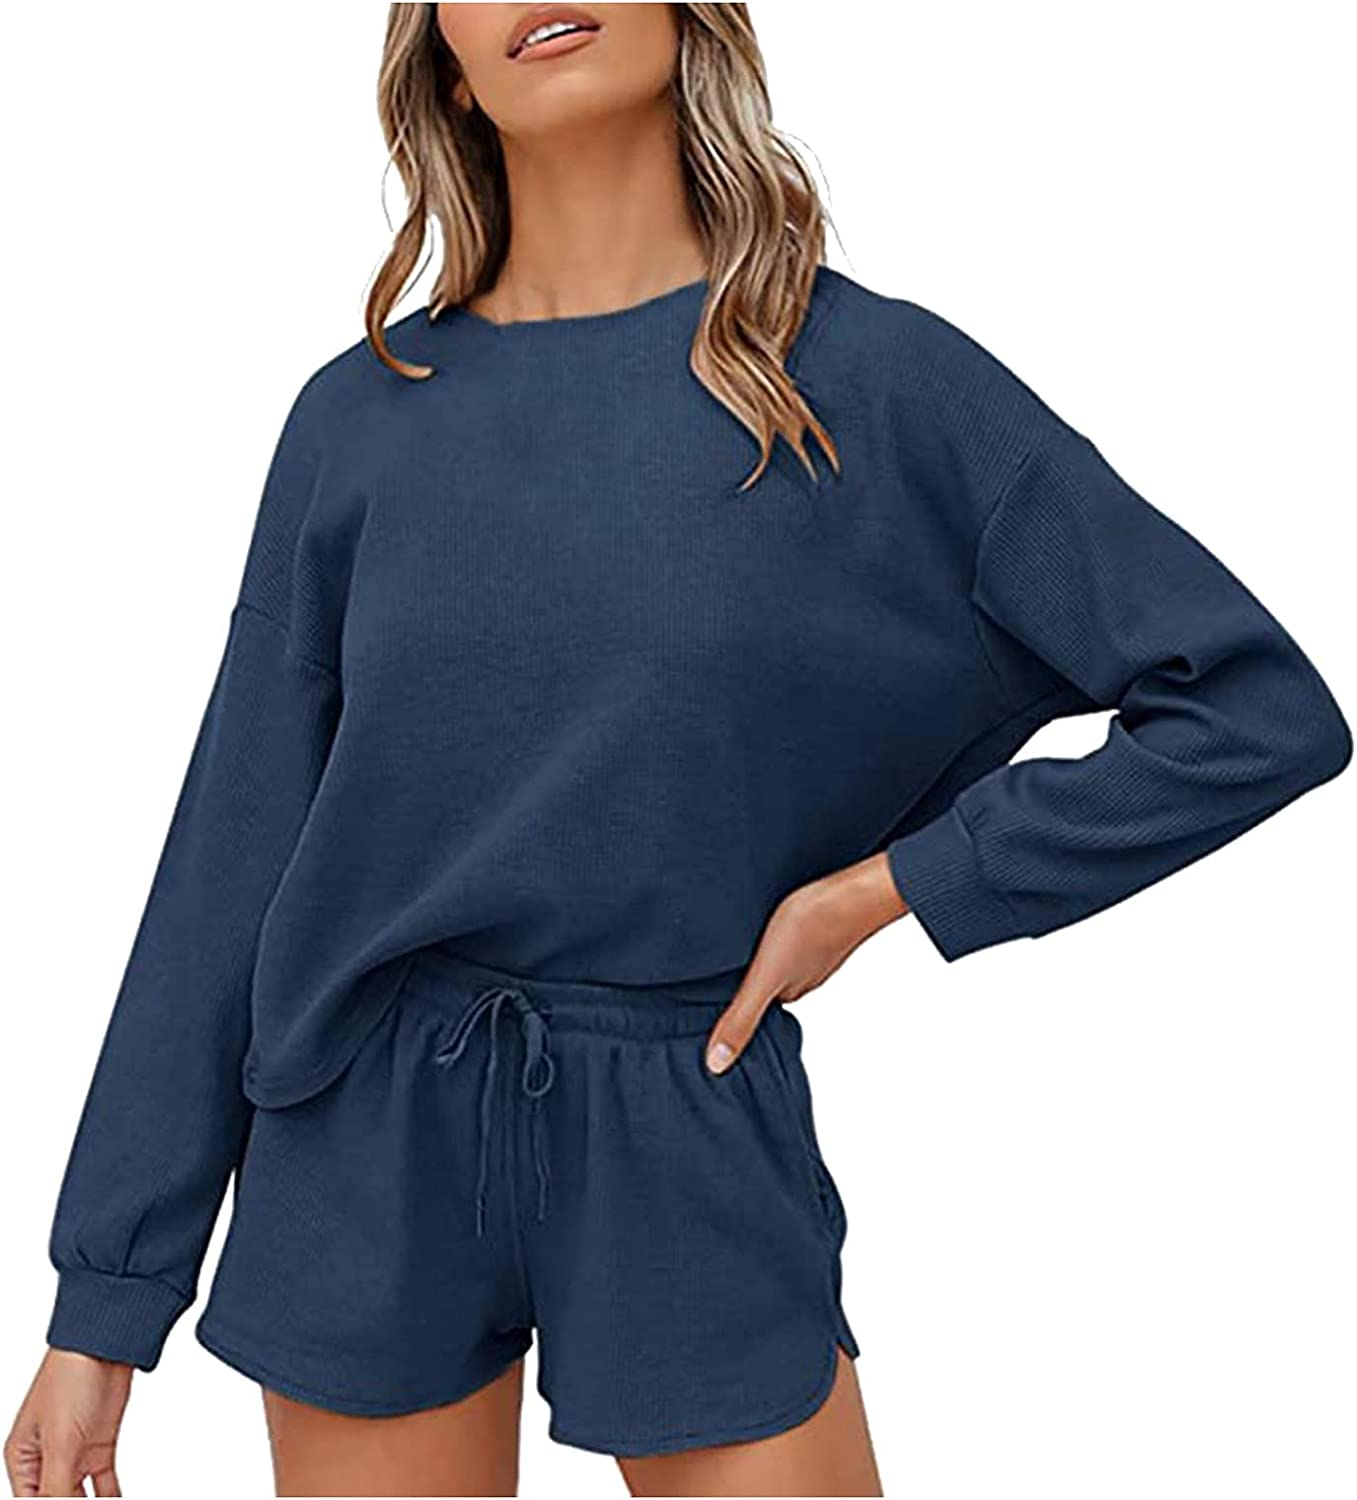 FNJJLU Two Piece Outfits for Women, Long Sleeve O-Neck Tops Short Pants Sets Casual Sports Outfits Beach Party Suit Set